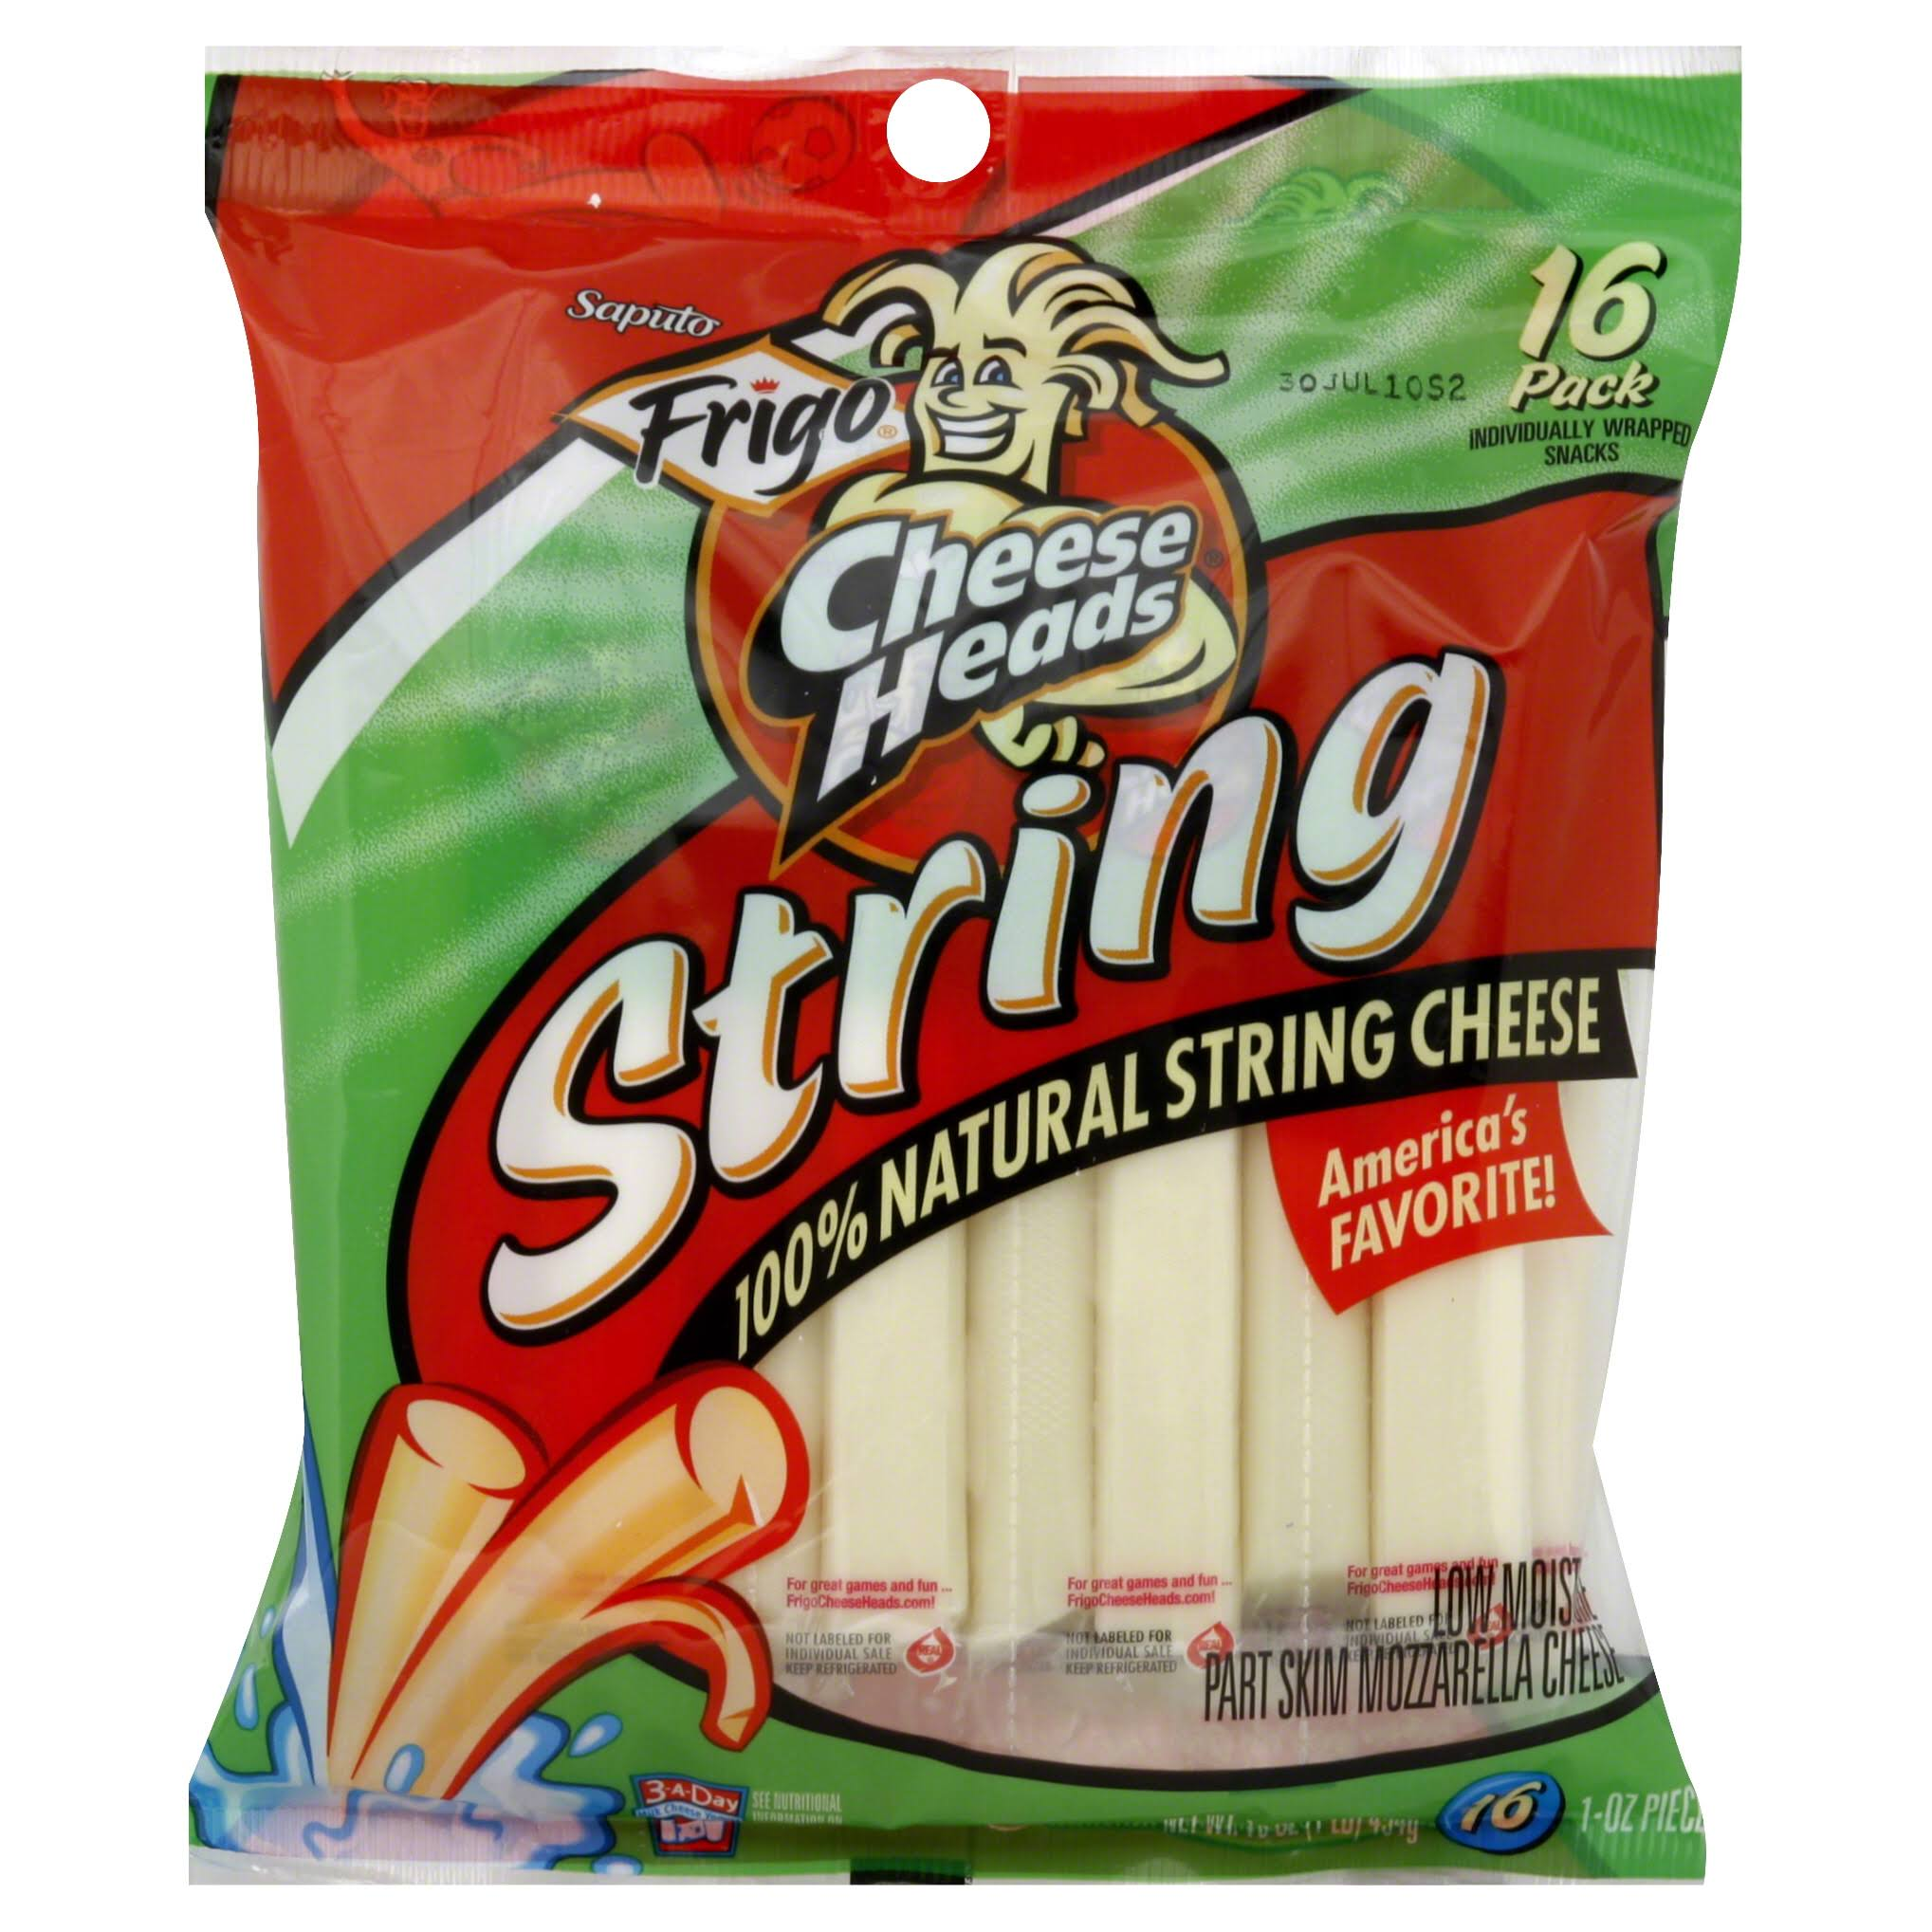 Frigo Cheese Heads String Cheese - Original, 16pk, 16oz